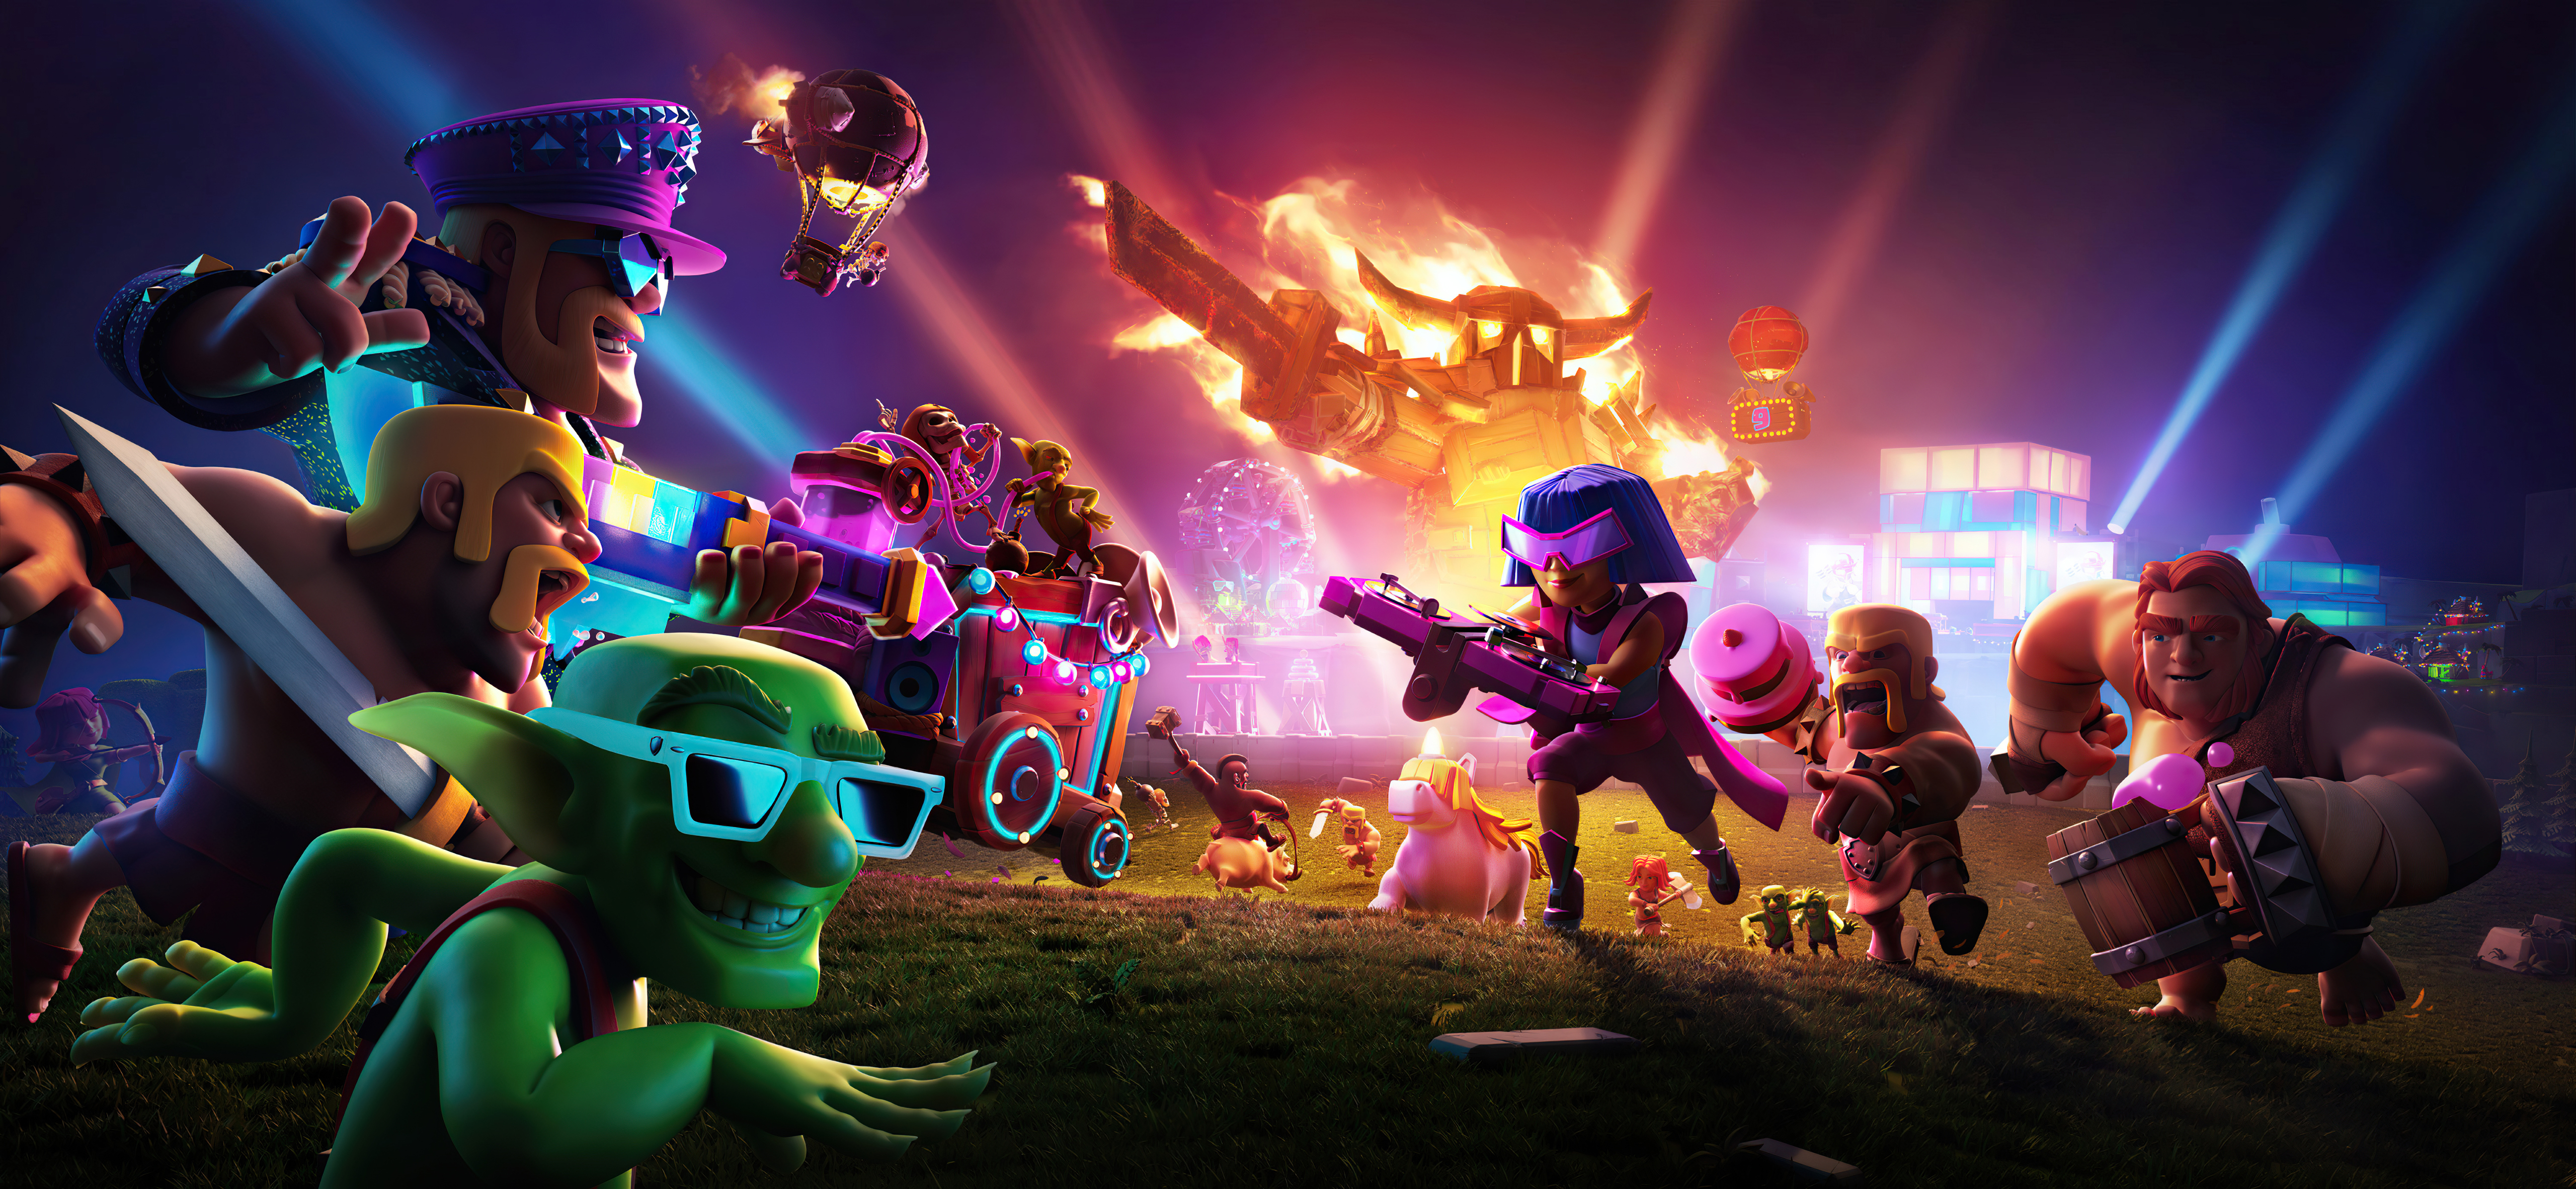 Wallpaper Clash of Clans 9th anniversary